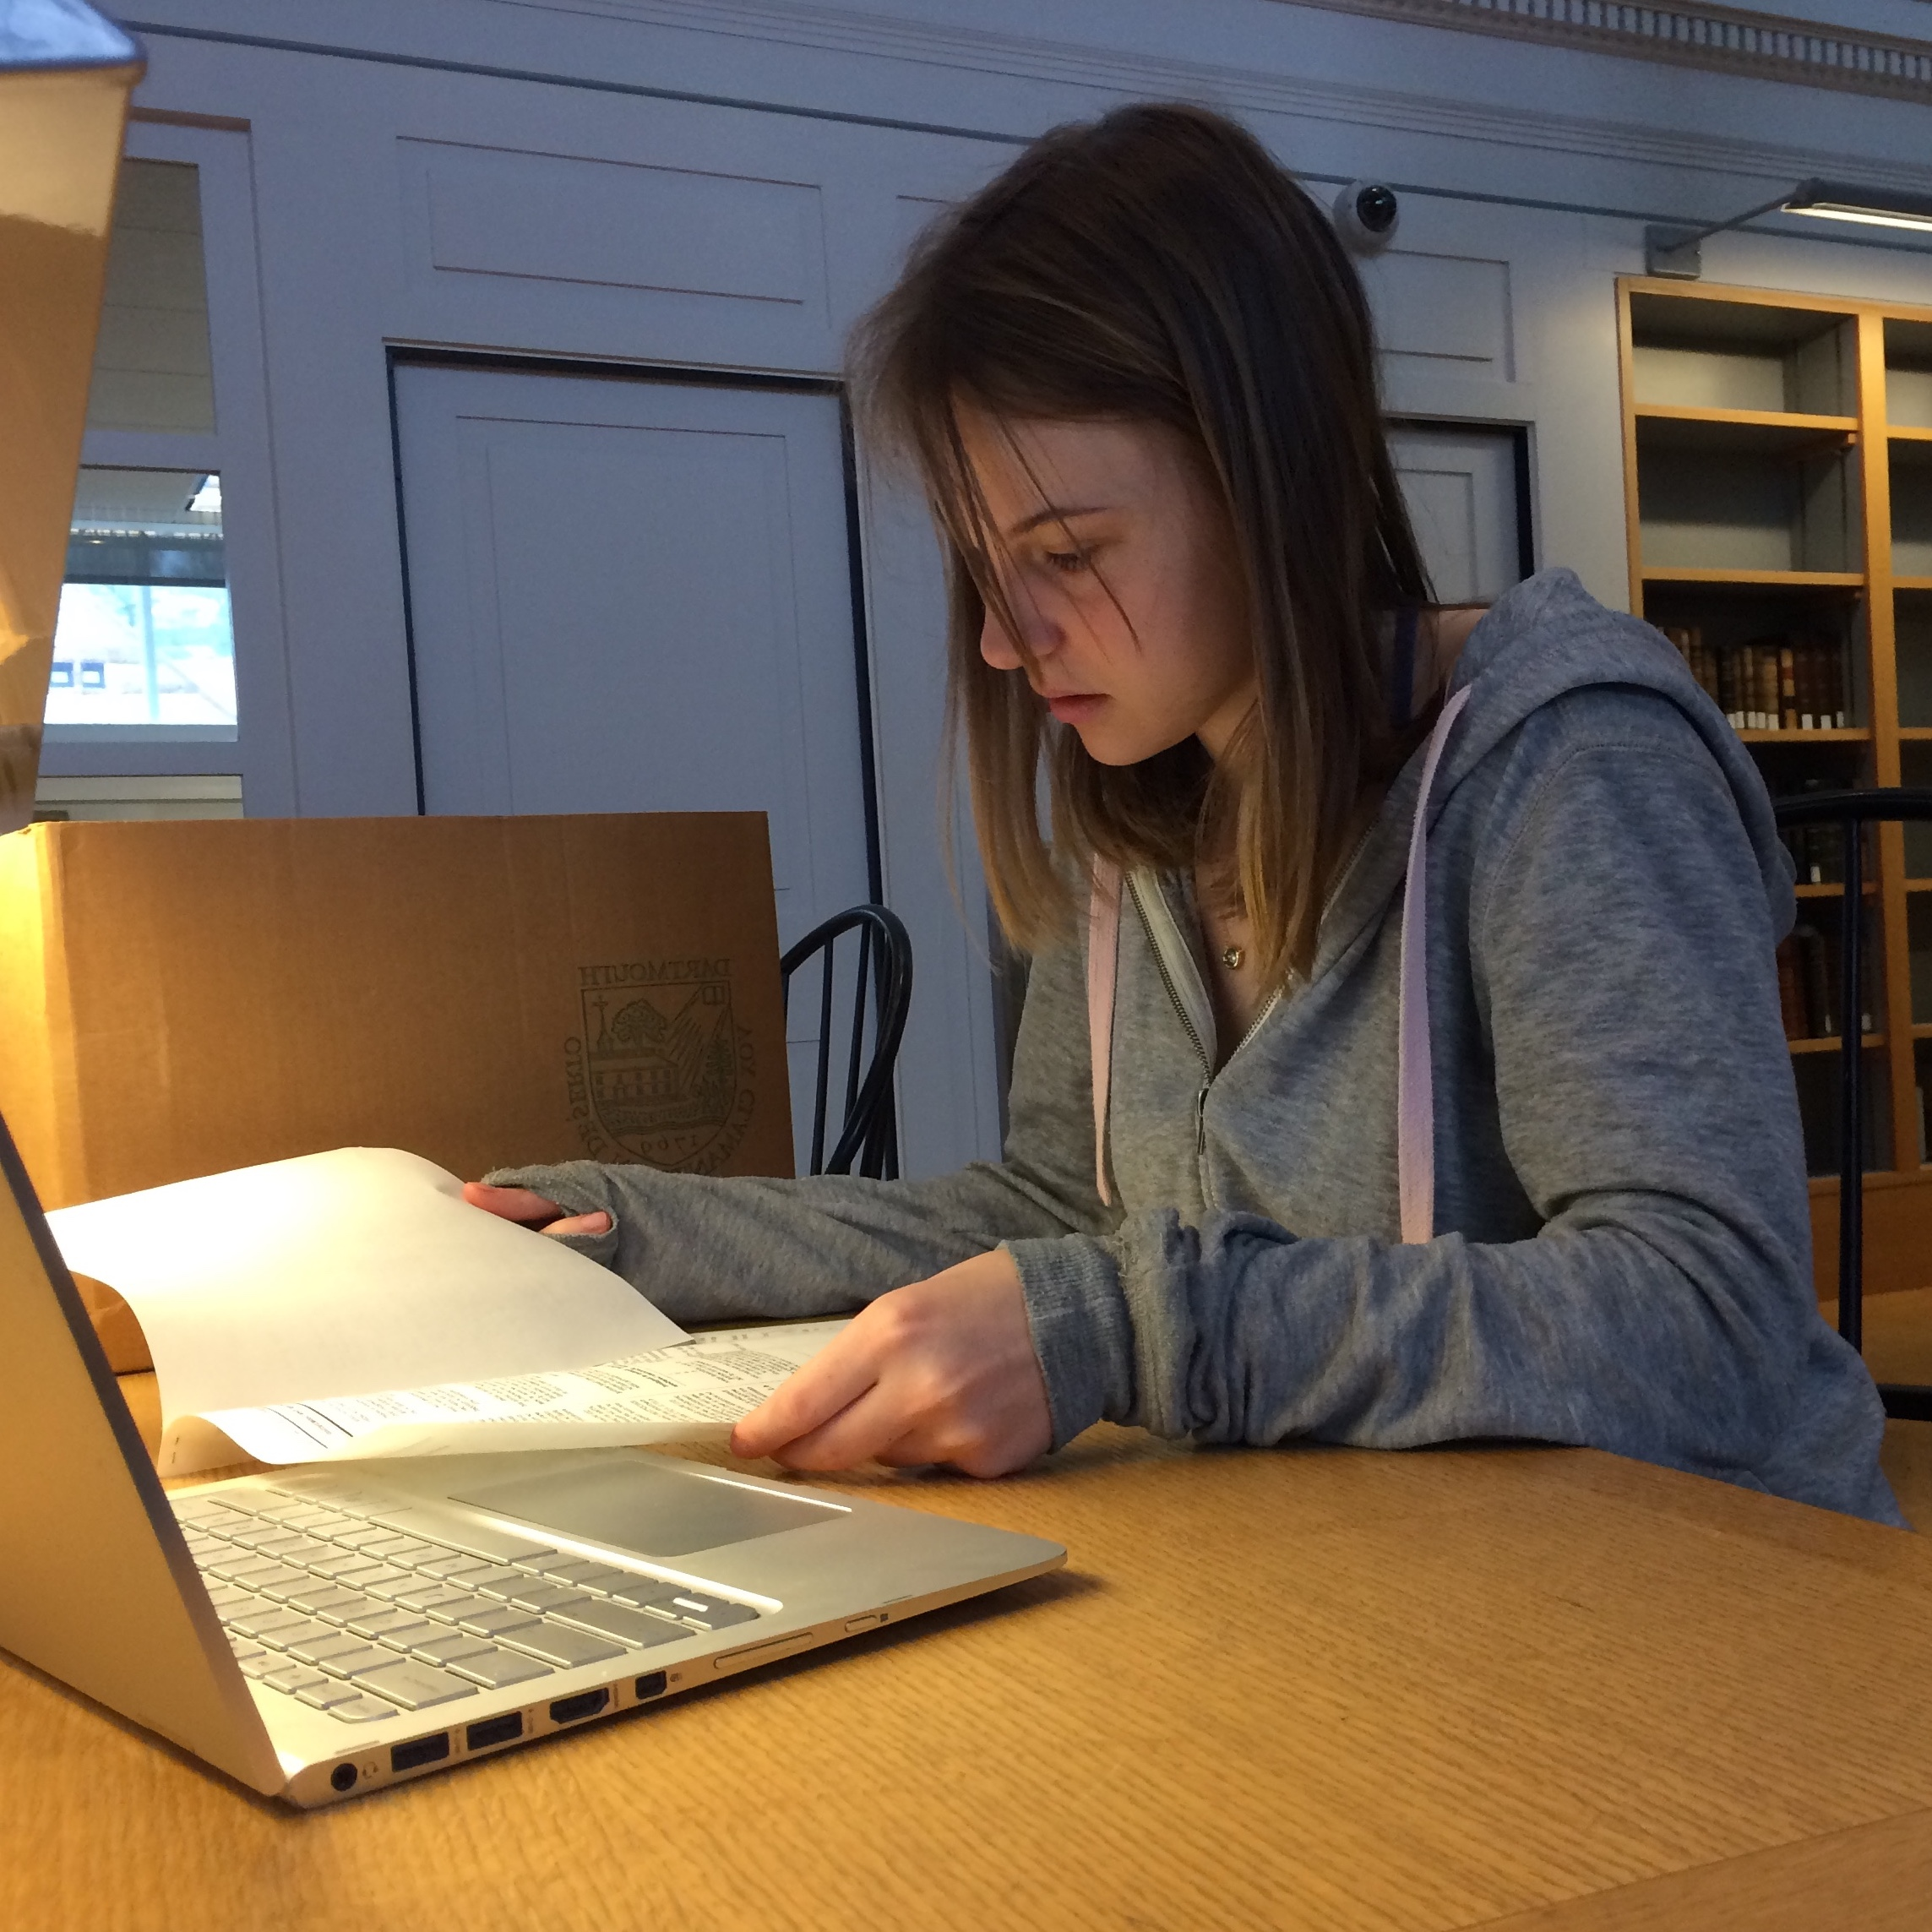 A student research fellow works with primary sources in Rauner Library's reading room